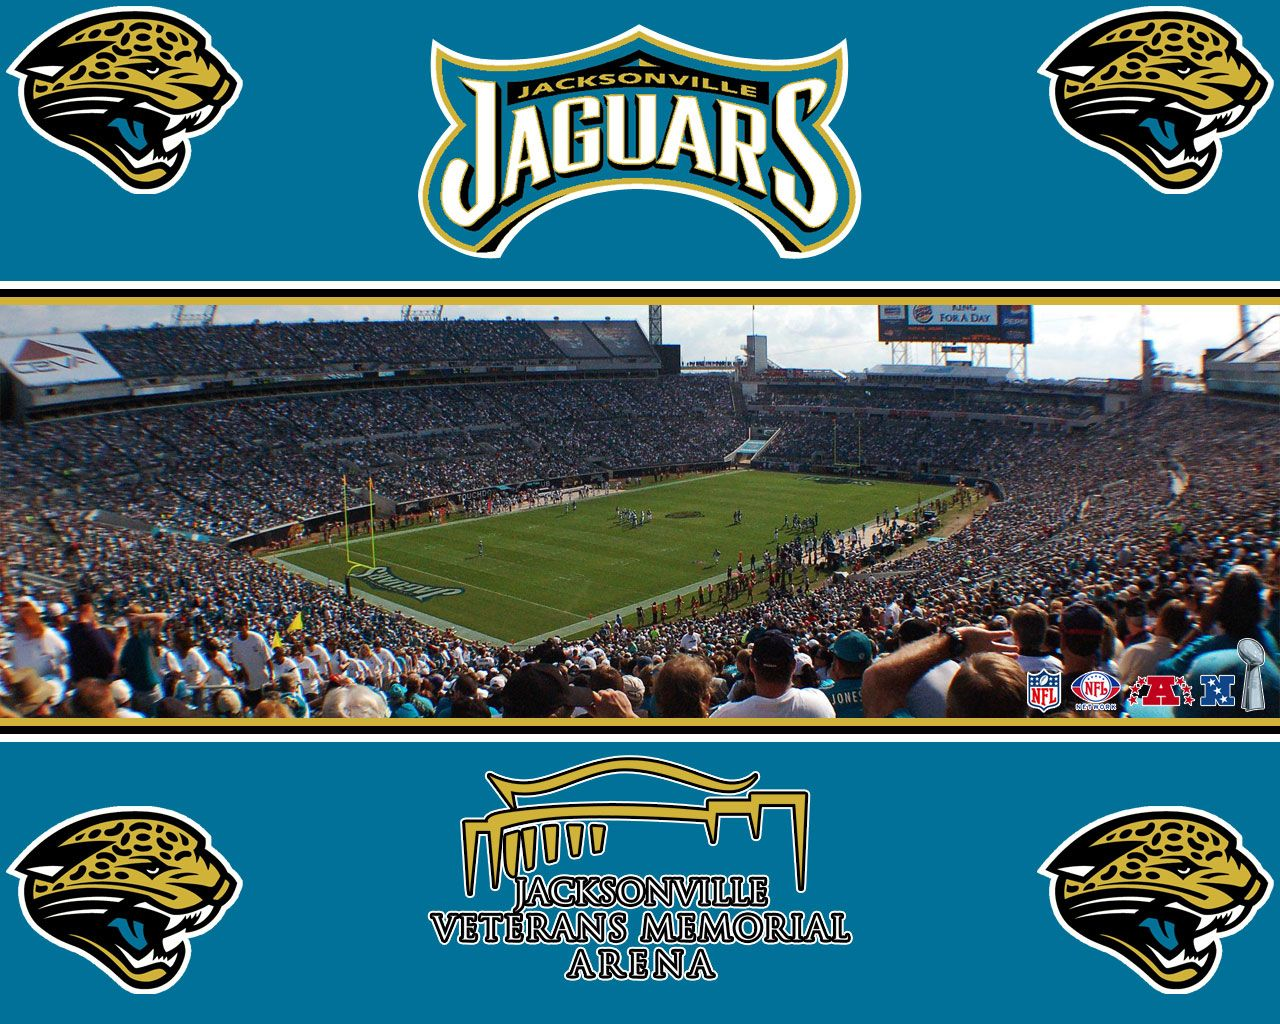 Jacksonville Jaguars Stadium Wallpaper